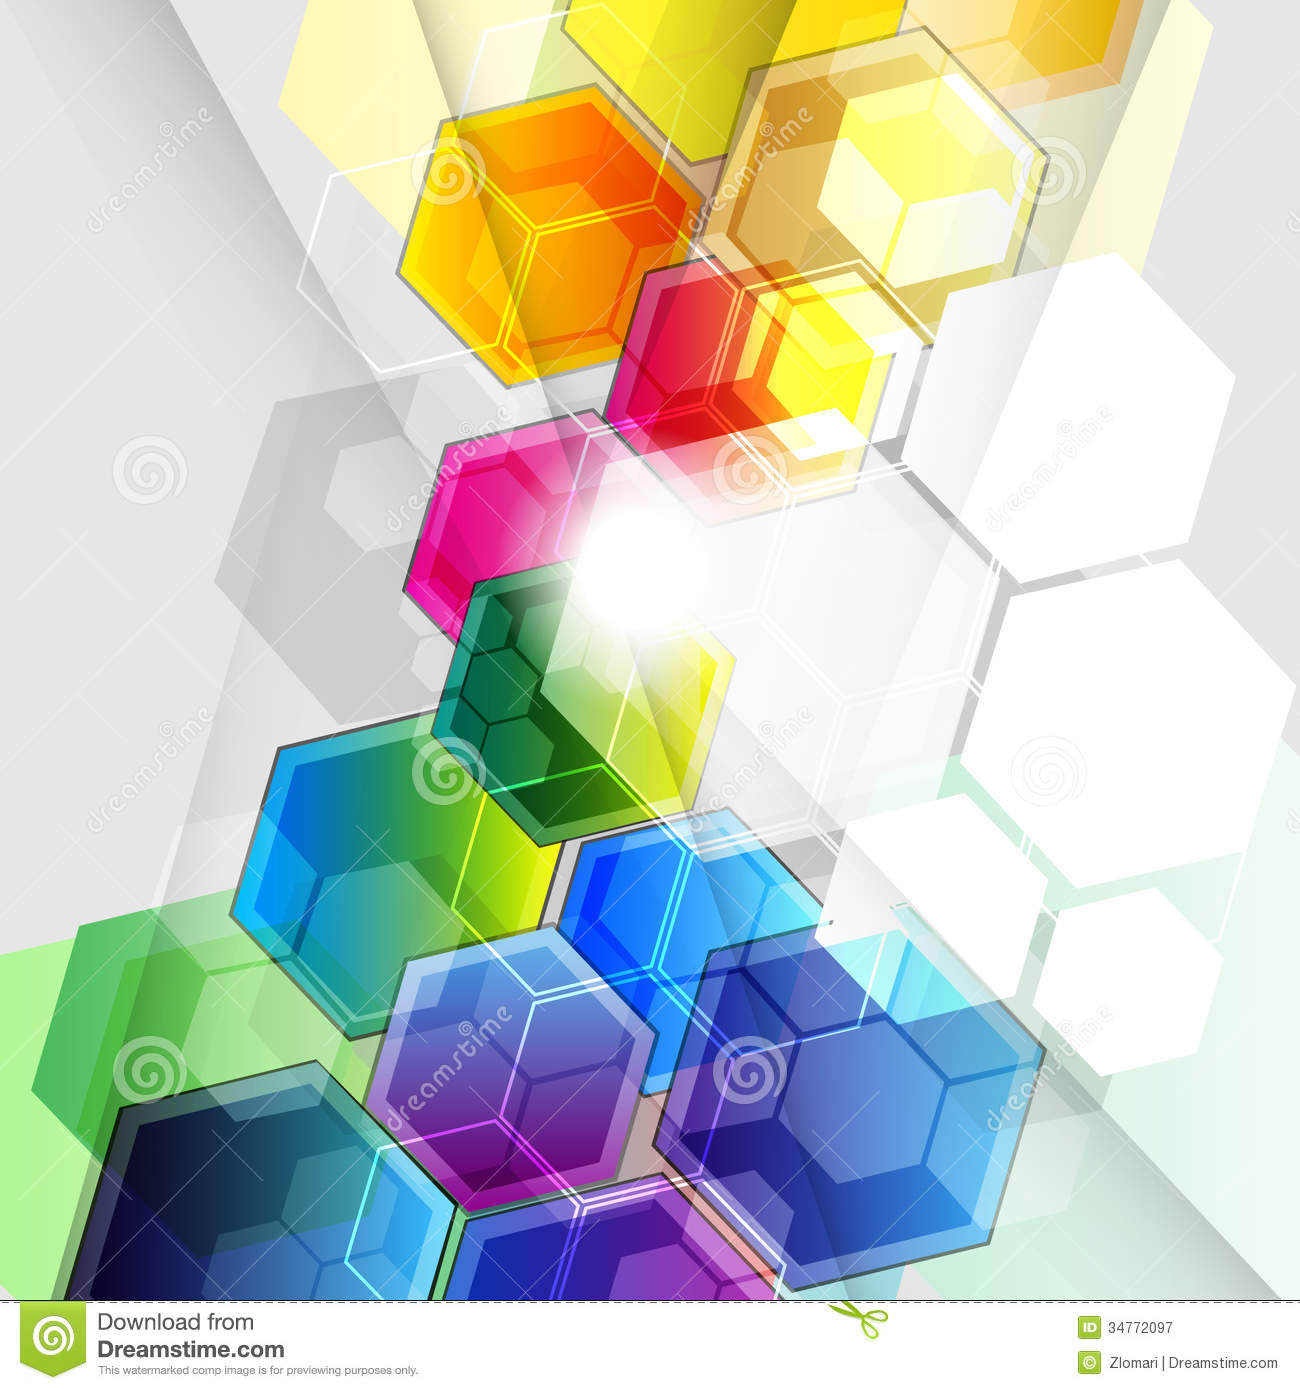 abstract colorful design light - photo #24